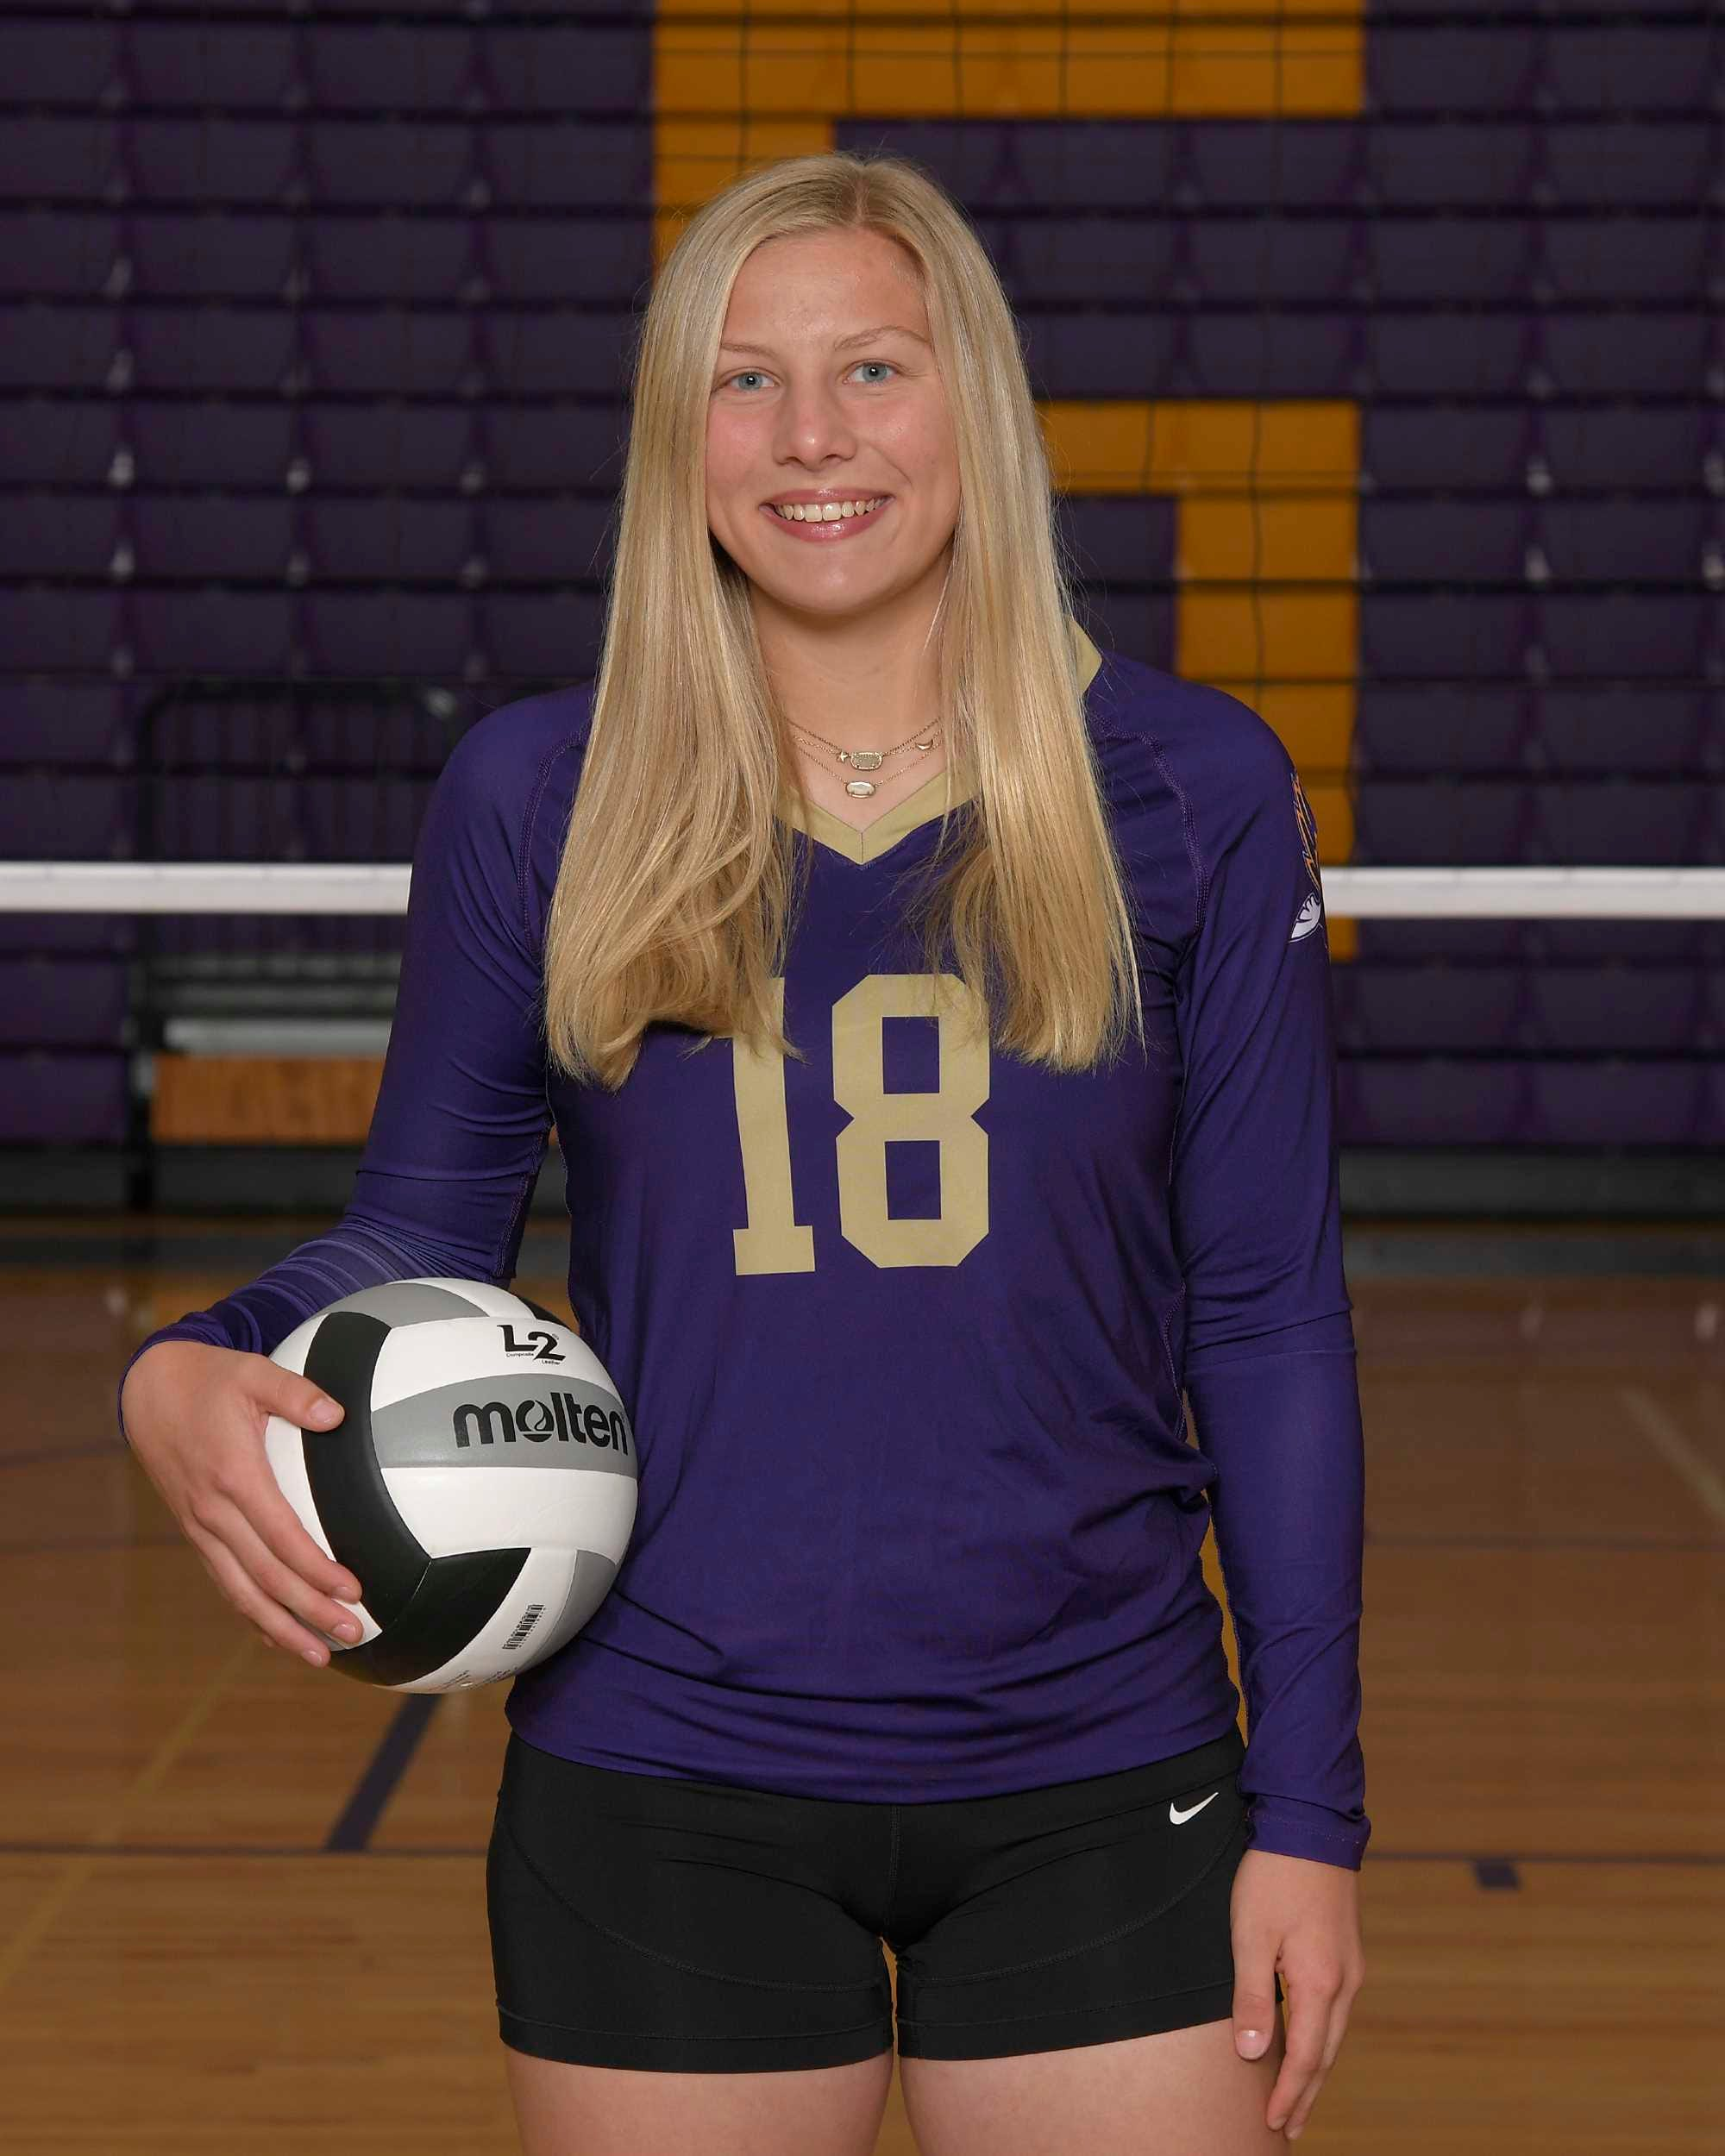 Olivia Baumann is one of the top volleyball players in the state.